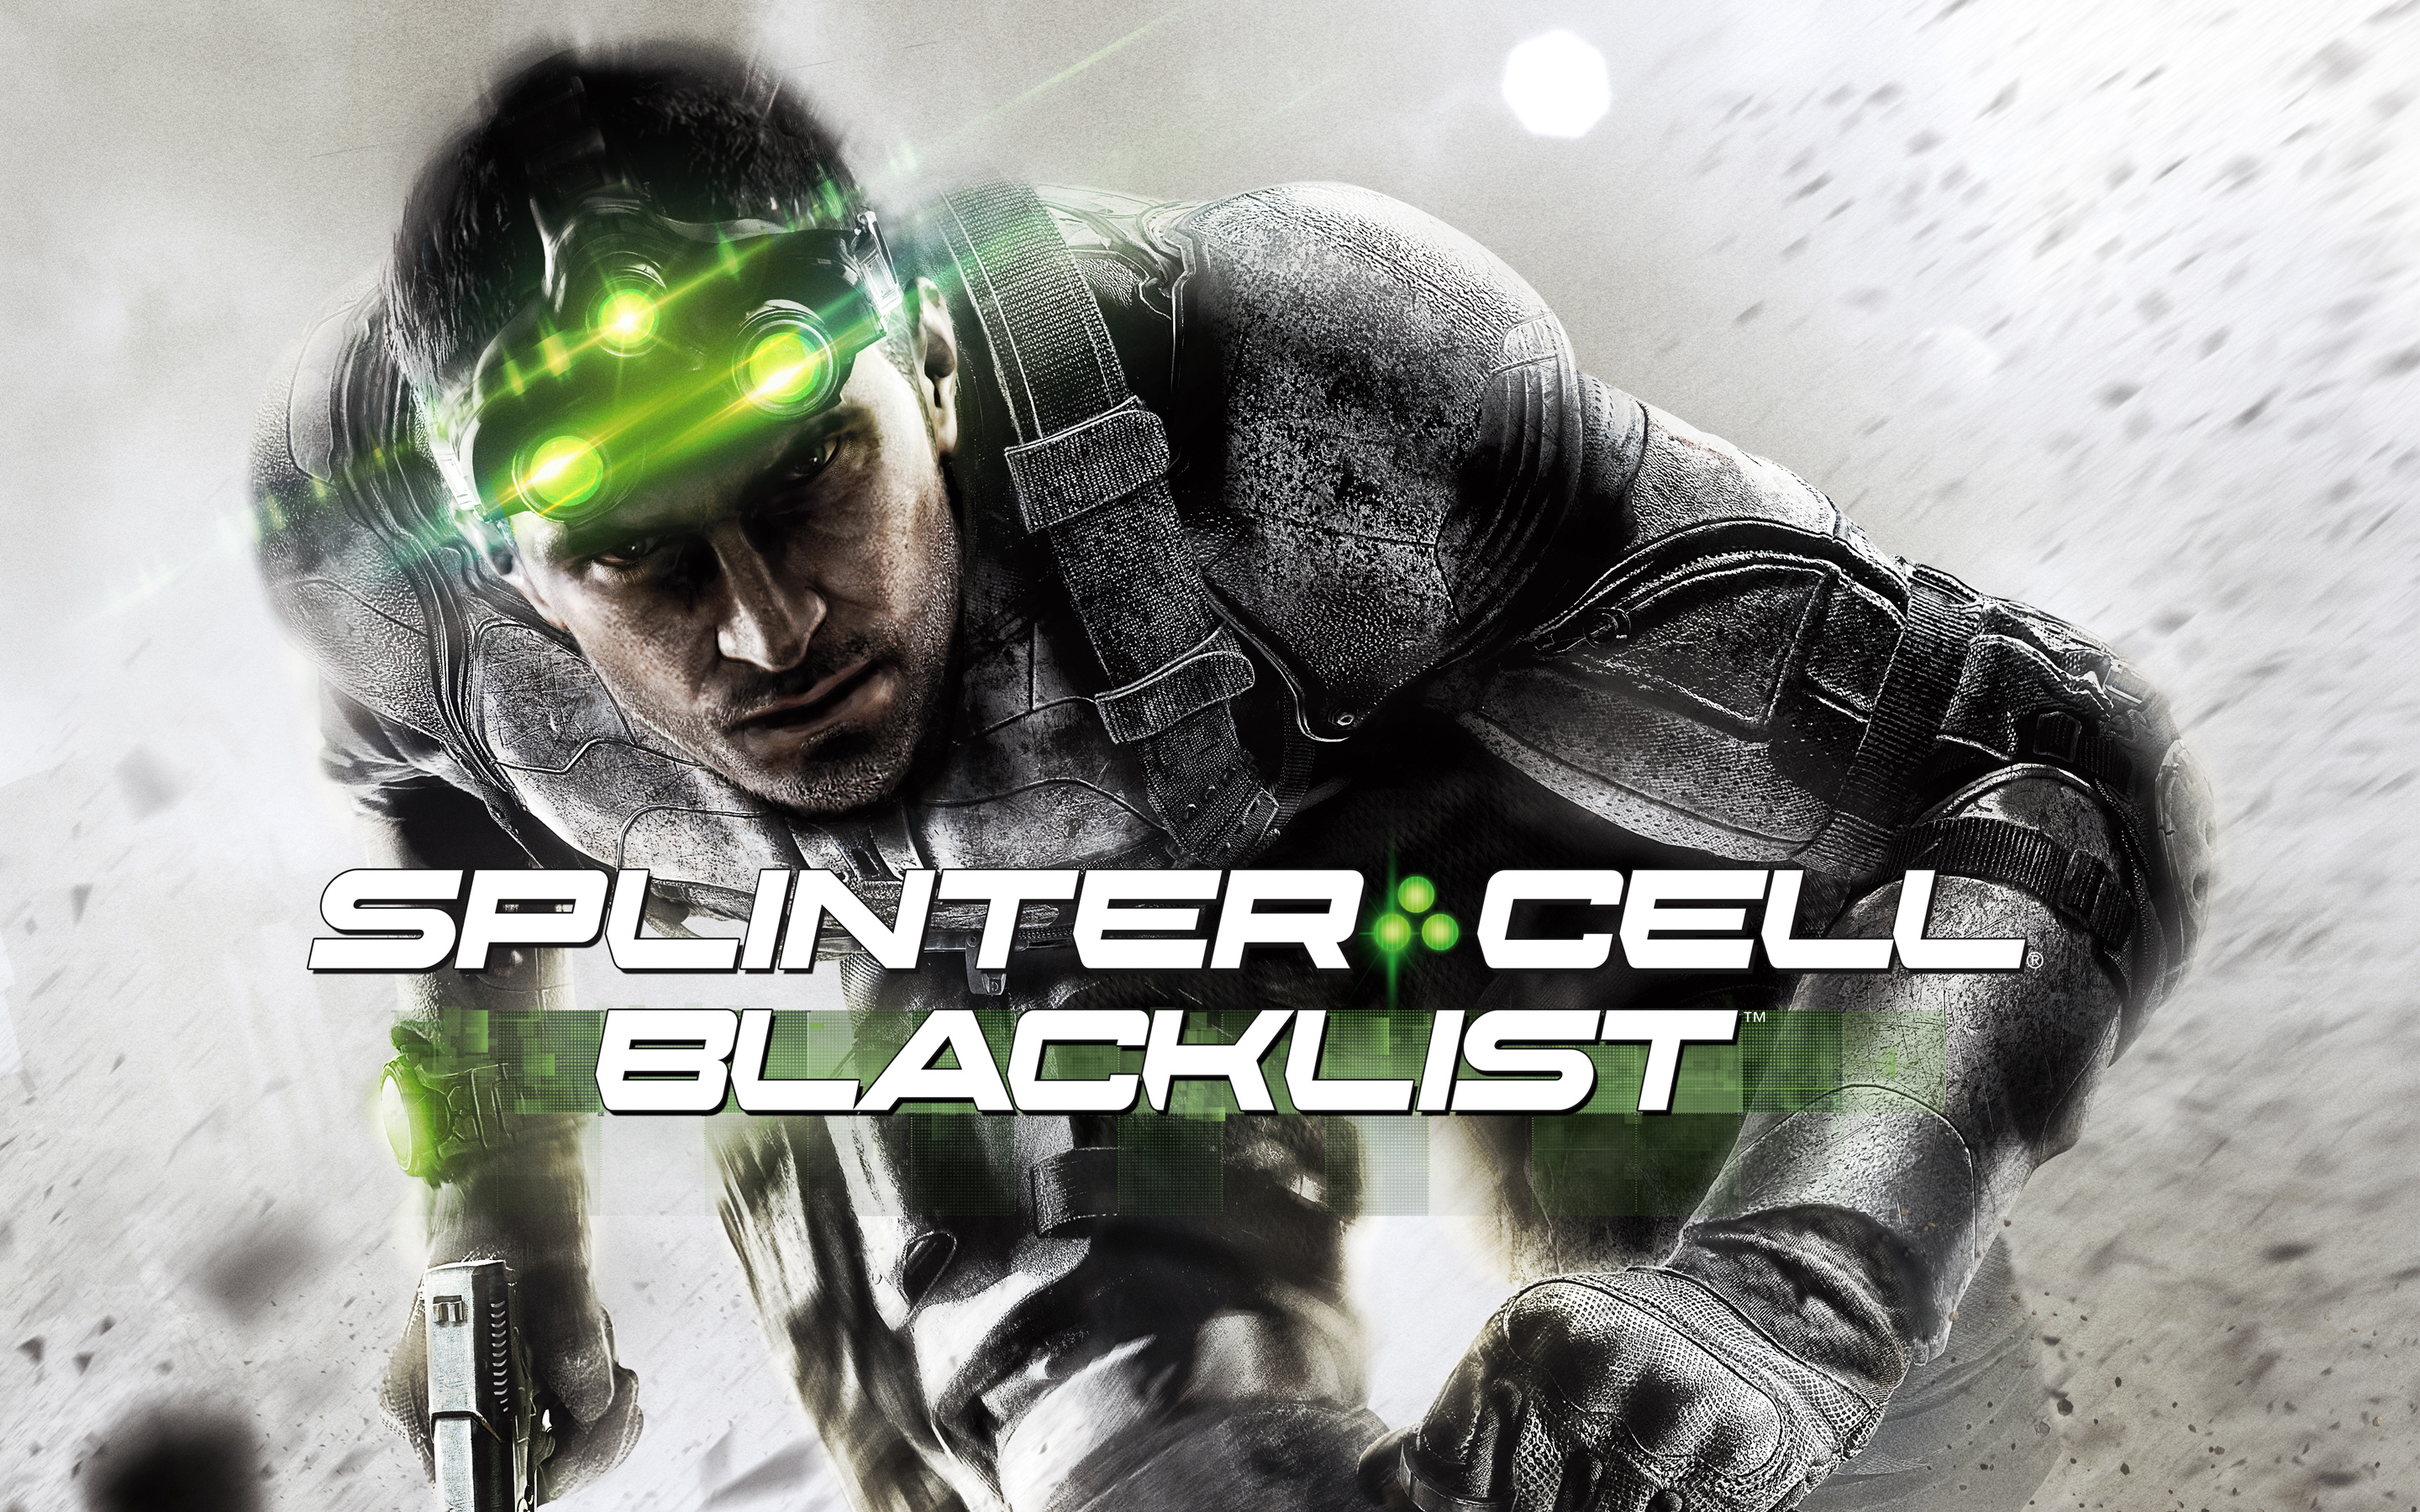 Tom Clancys Splinter Cell Blacklist Game Wallpapers HD Wallpapers 2880x1800